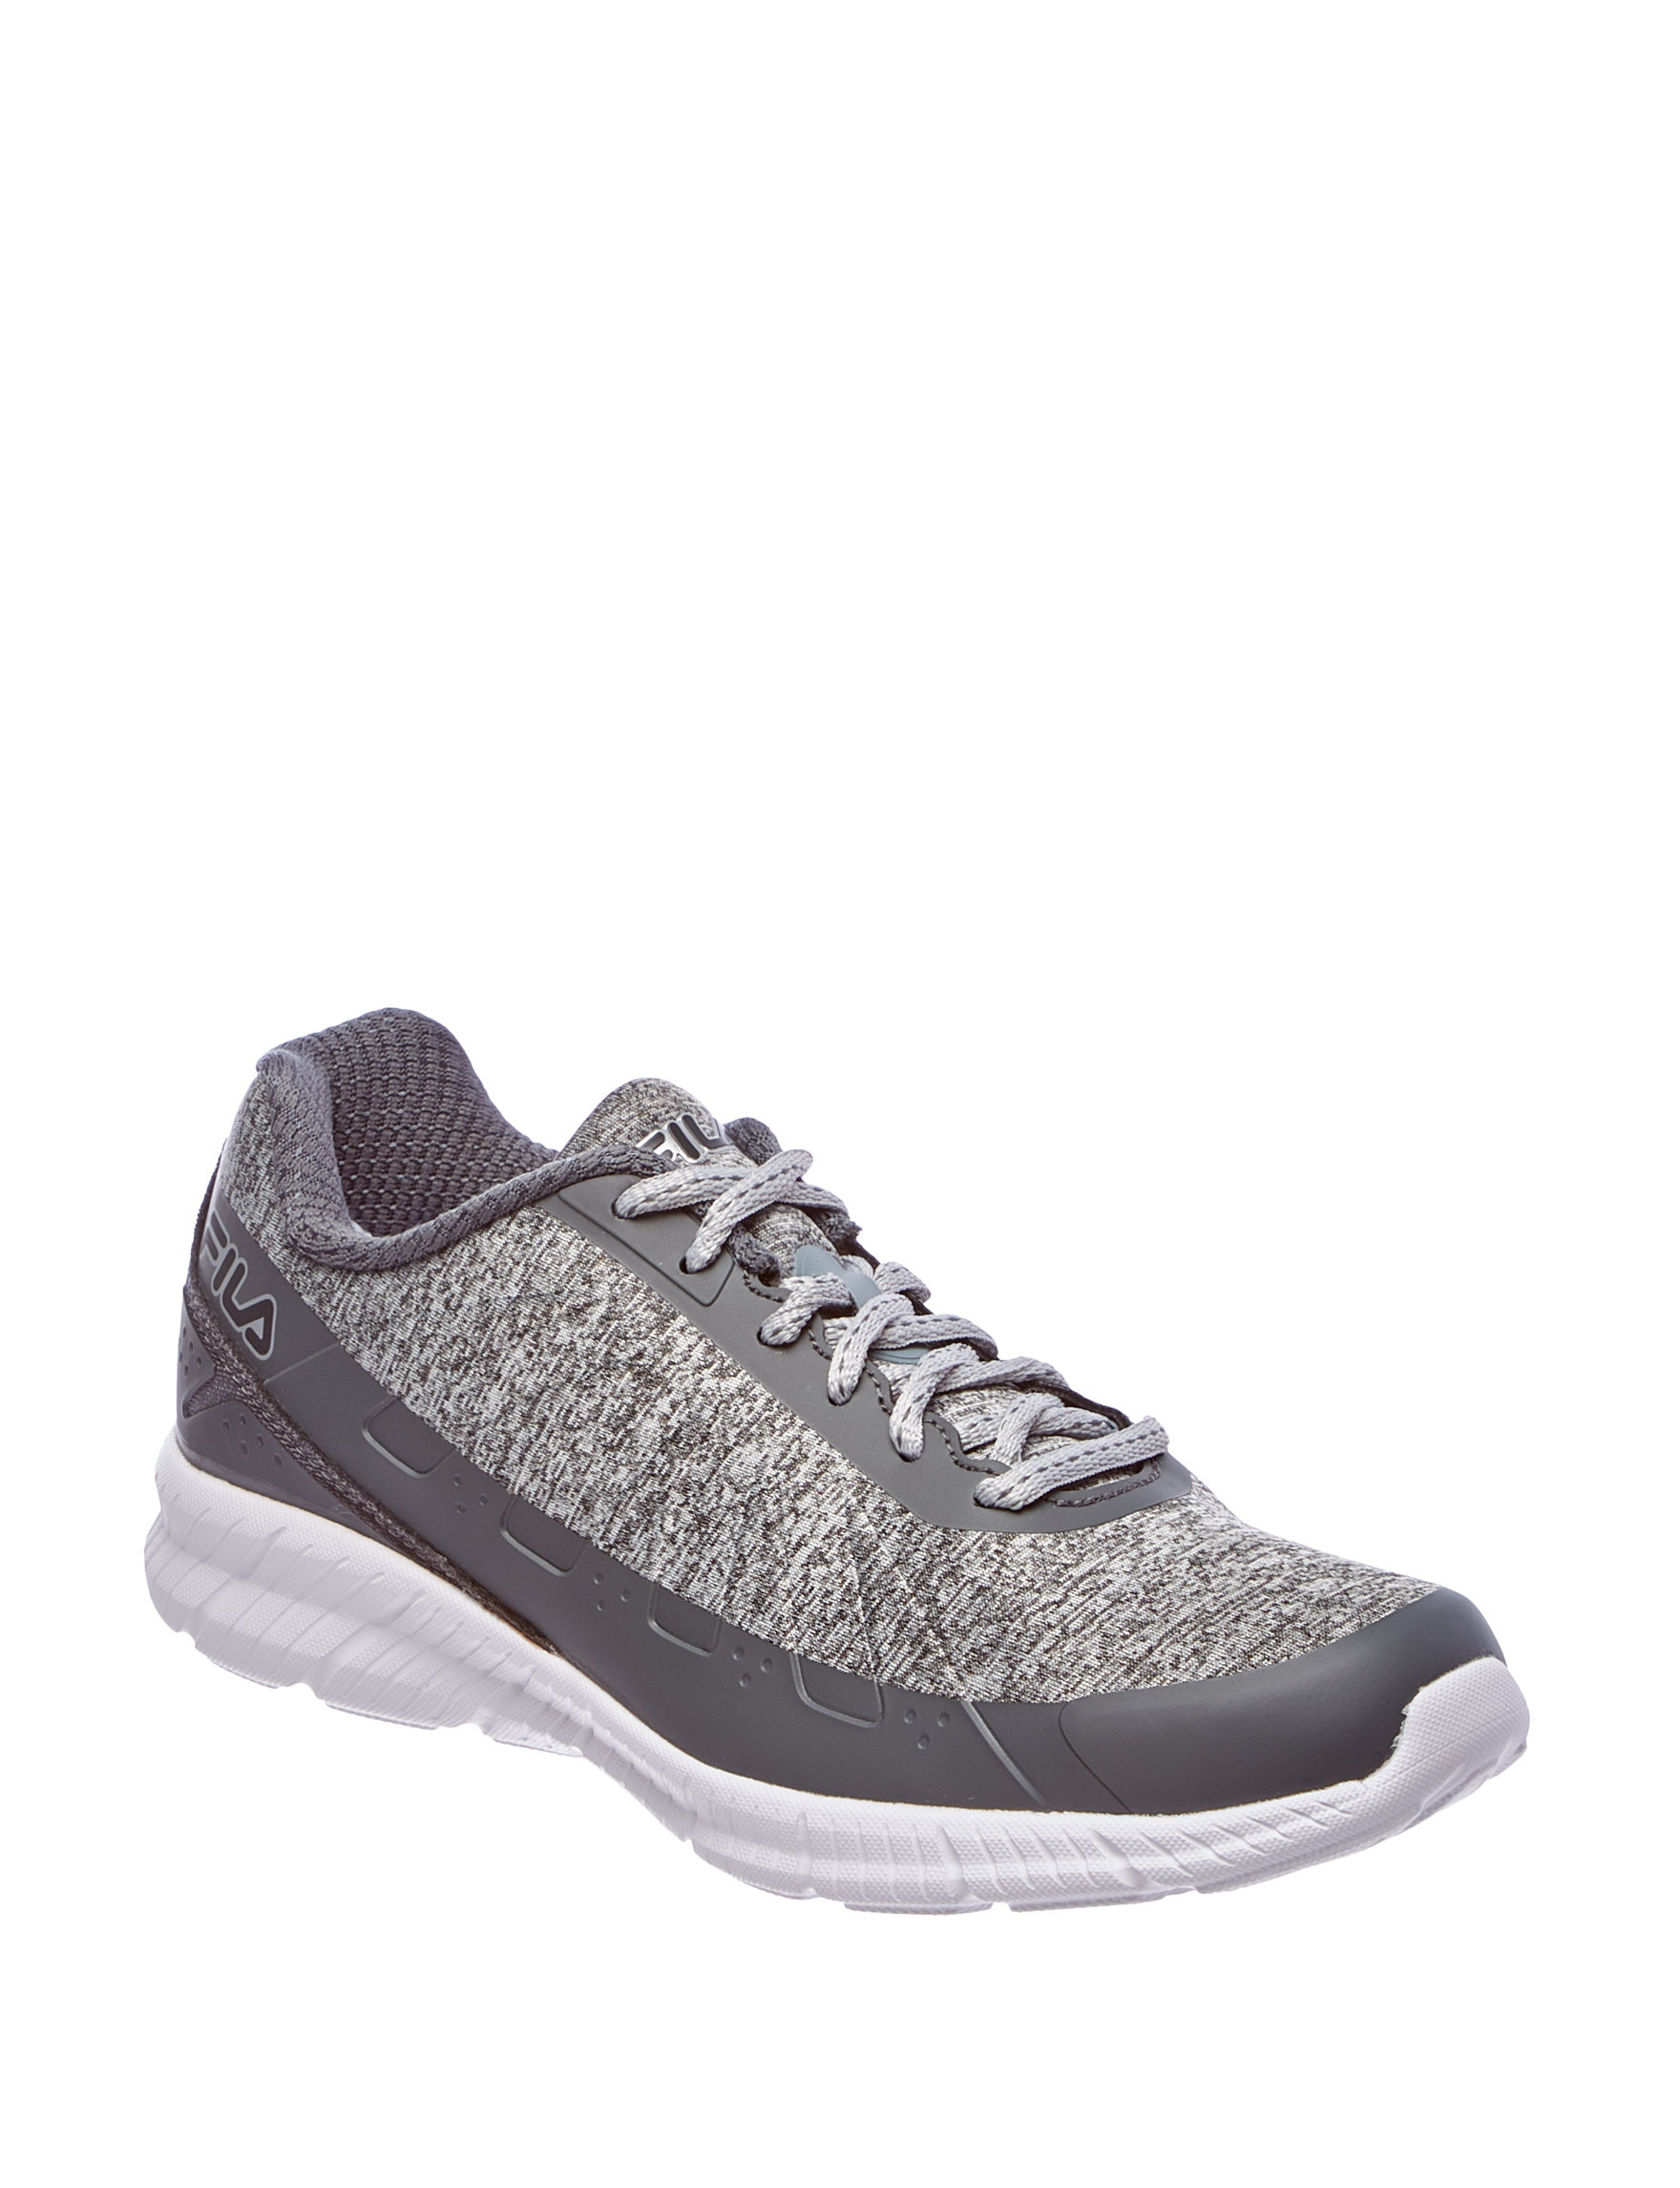 Fila Grey Comfort Shoes